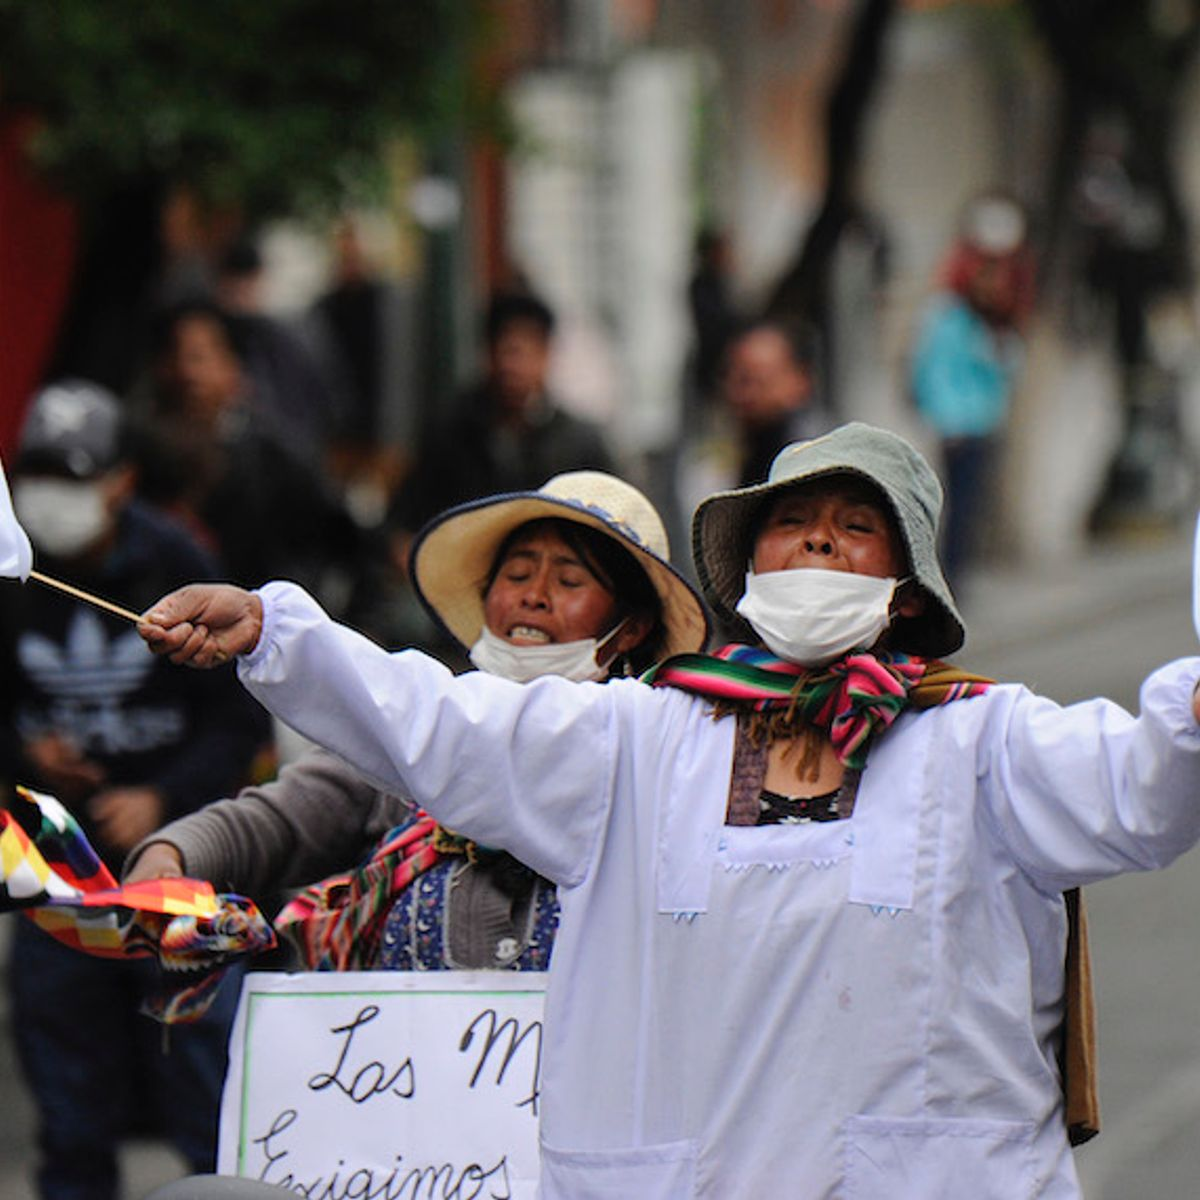 """USAID arriving in Bolivia to """"monitor elections,"""" raising fears of U.S. meddling in May 3 vote"""